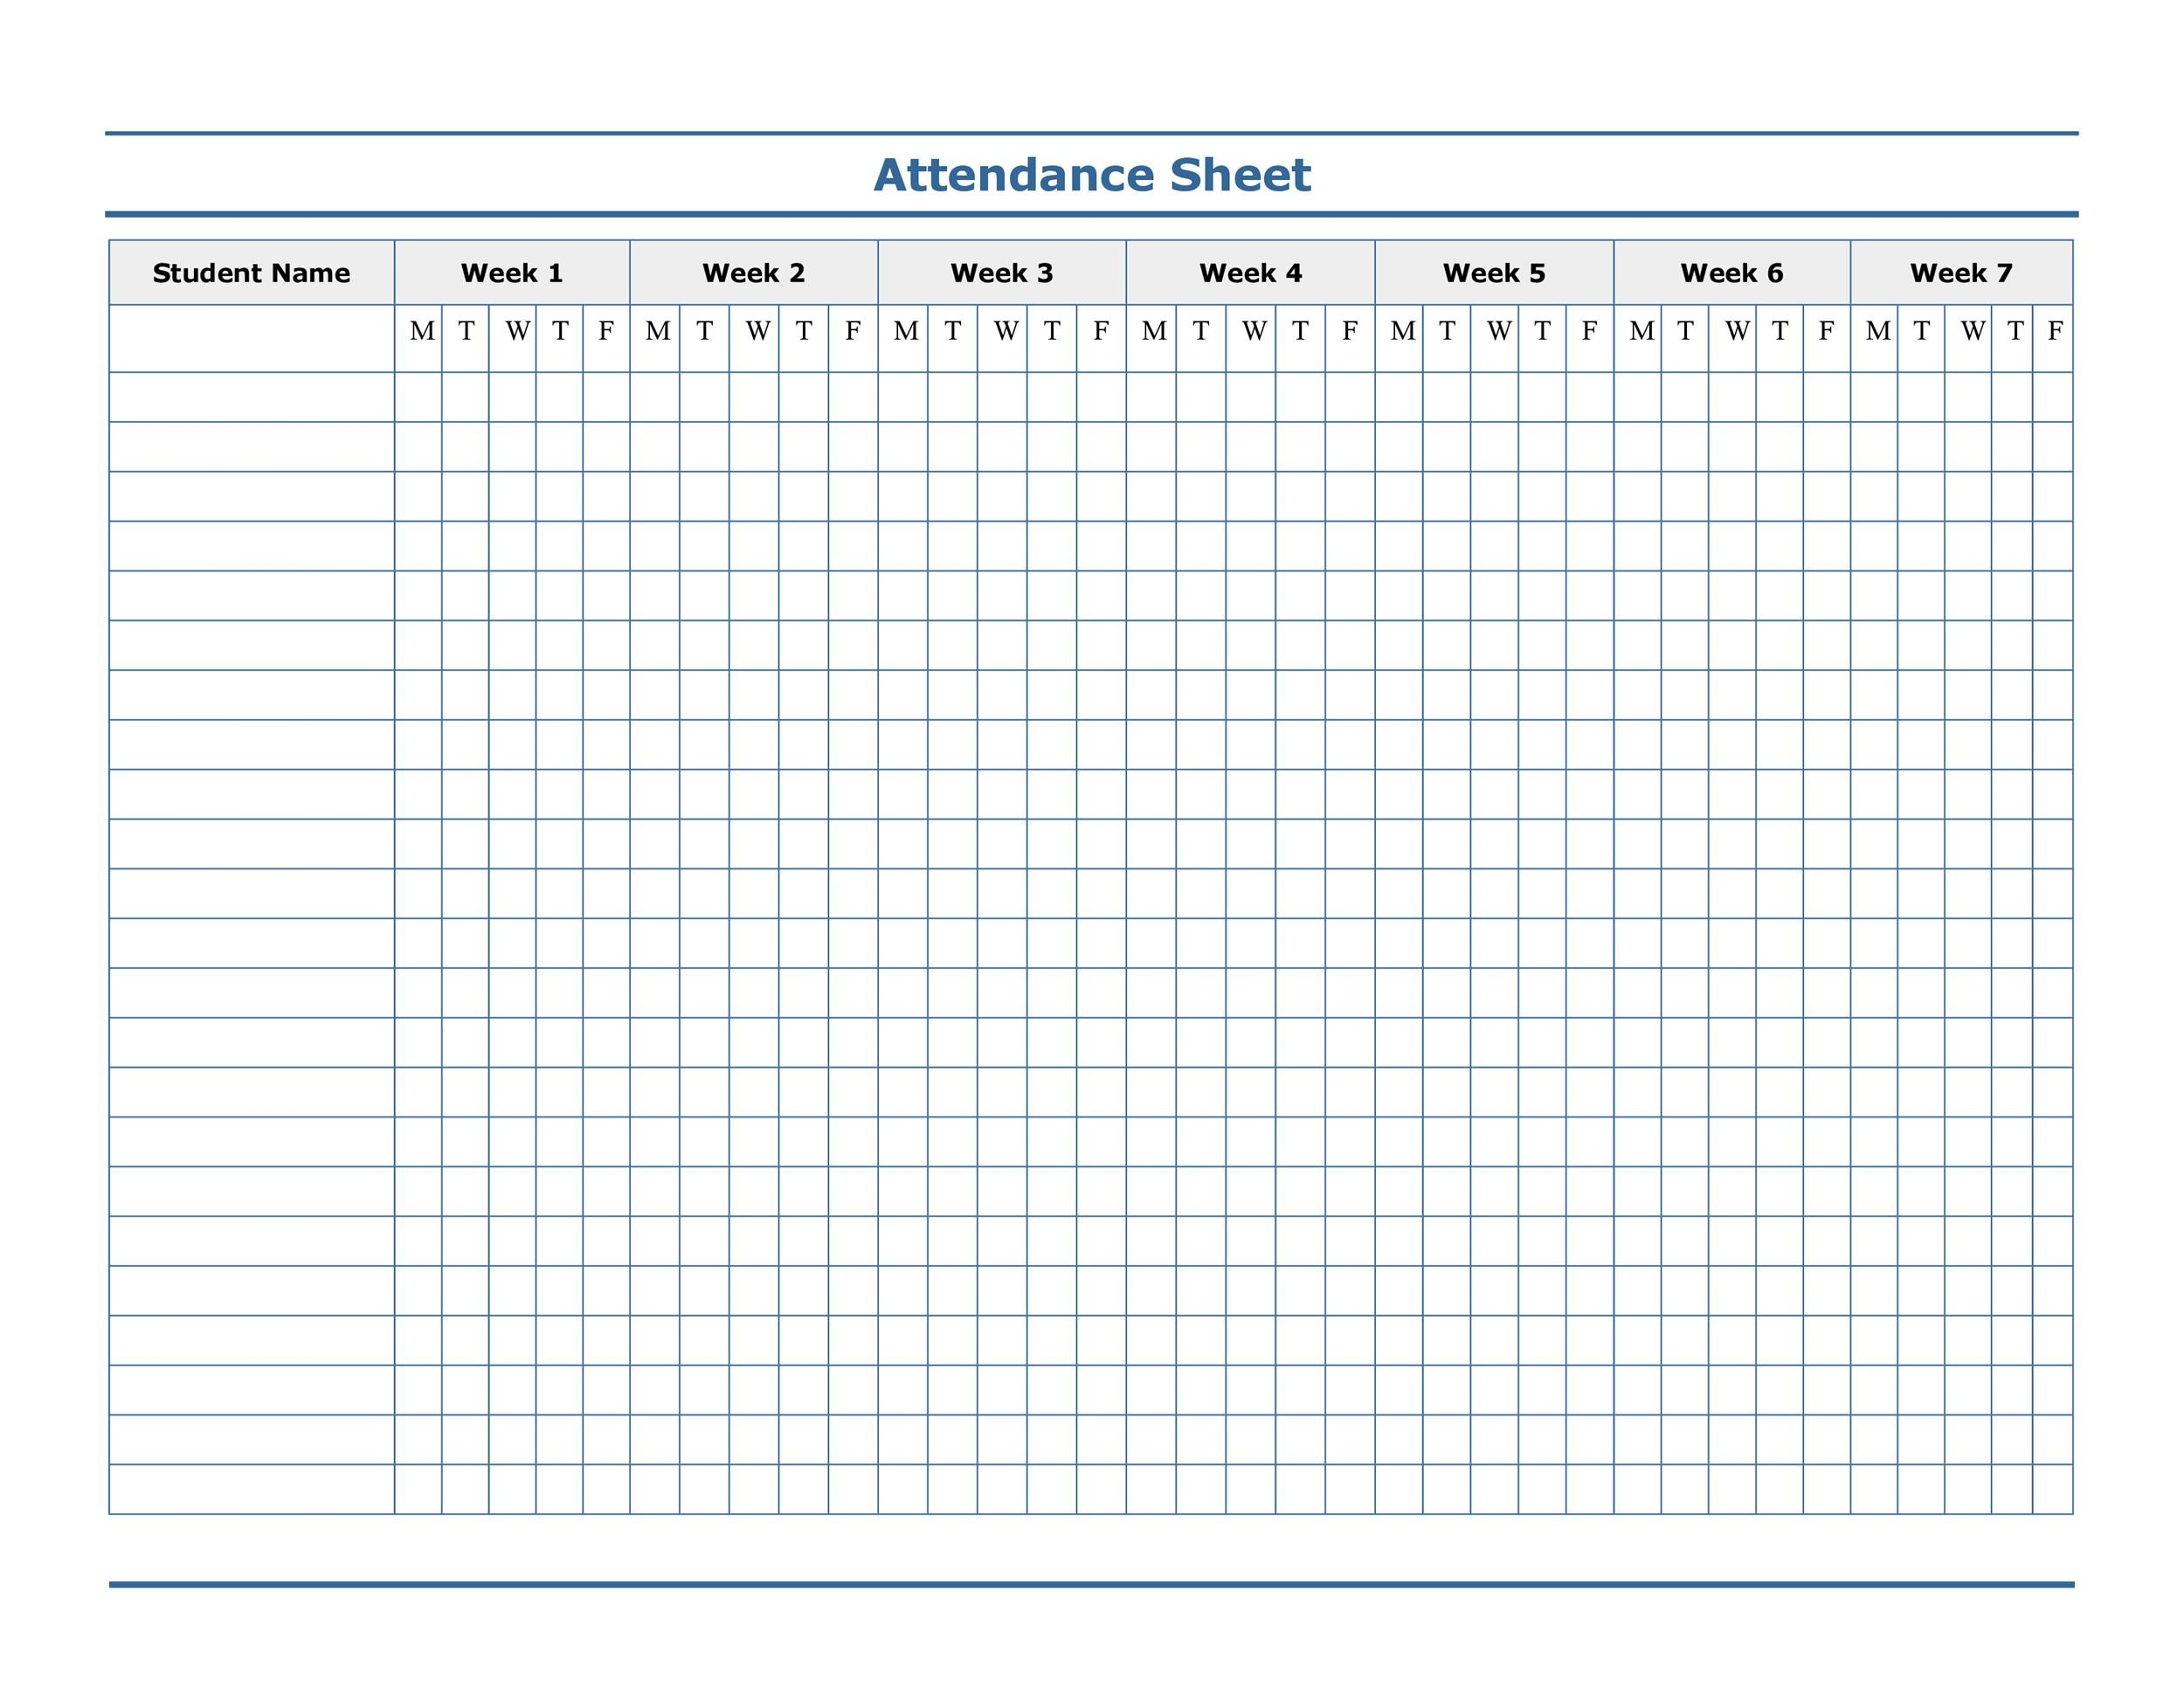 image regarding Attendance Sheet Printable named 38 Free of charge Printable Attendance Sheet Templates